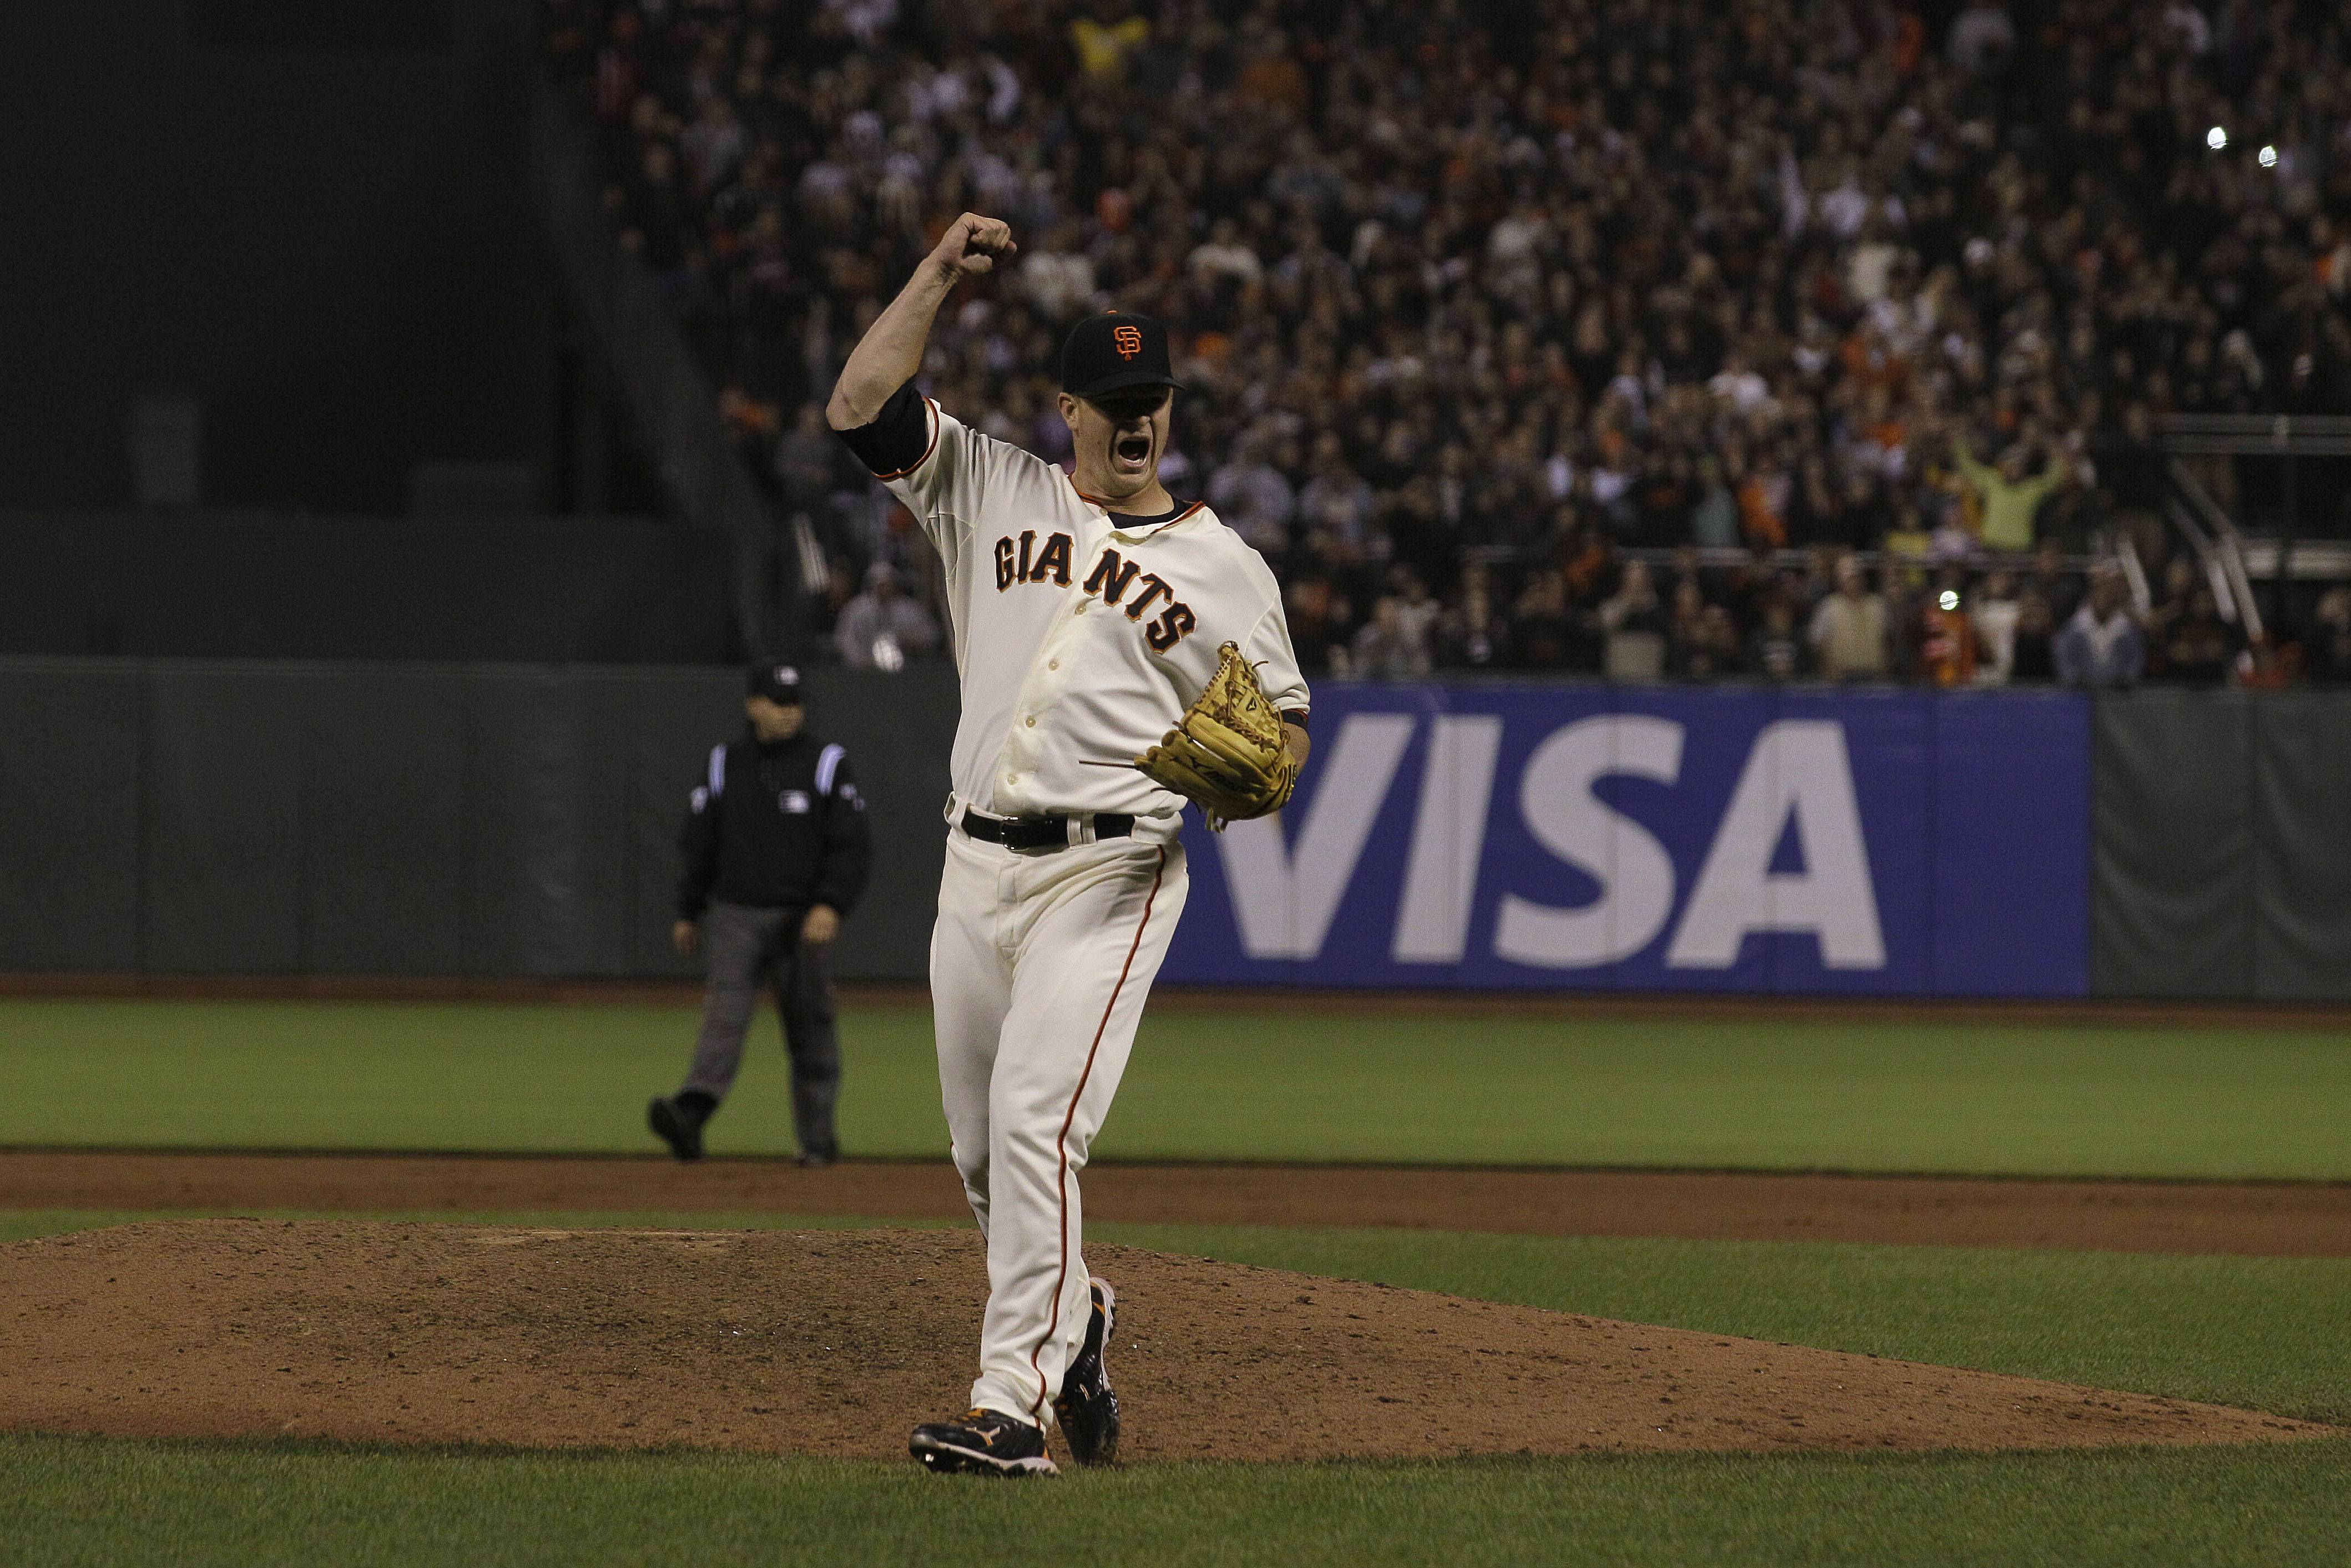 San Francisco Giants pitcher Matt Cain celebrates after his perfect game Wednesday night.